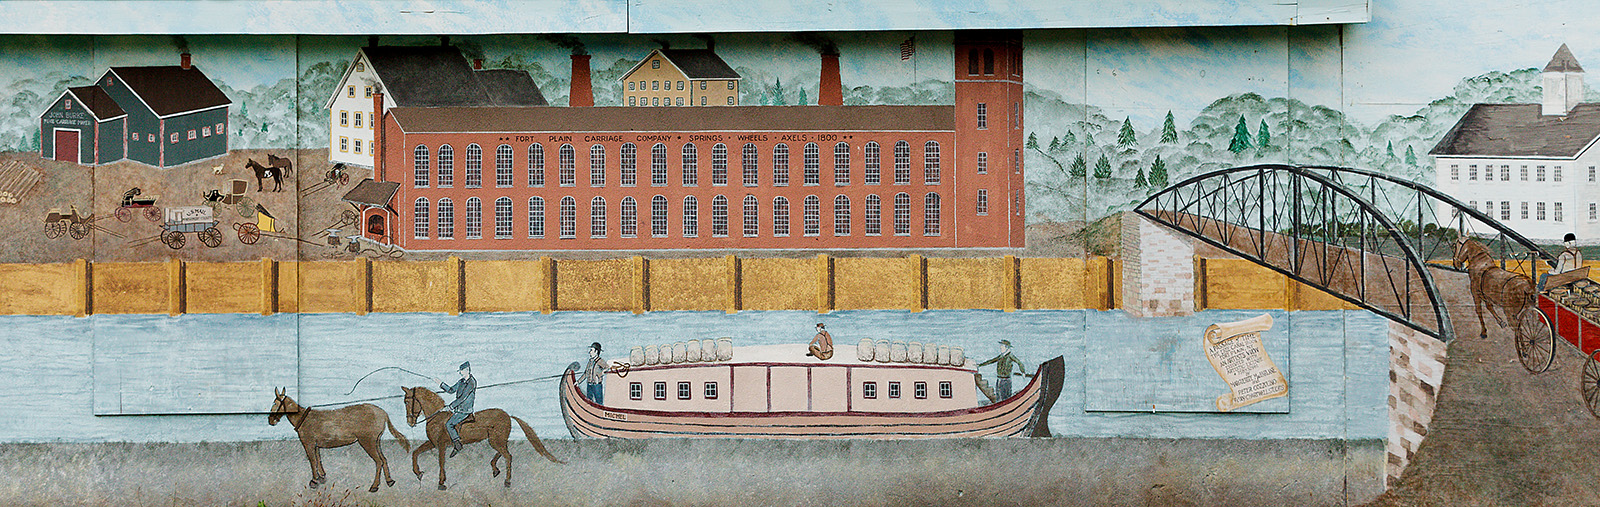 """Fort Plain on the Erie Canal"", (detail), Cozzolino and MacFarlane, Chartwell Studios, Sharon Springs, NY, courtesy of R. Hancock, Spring and Axle Works building, Willett Street, Fort Plain"